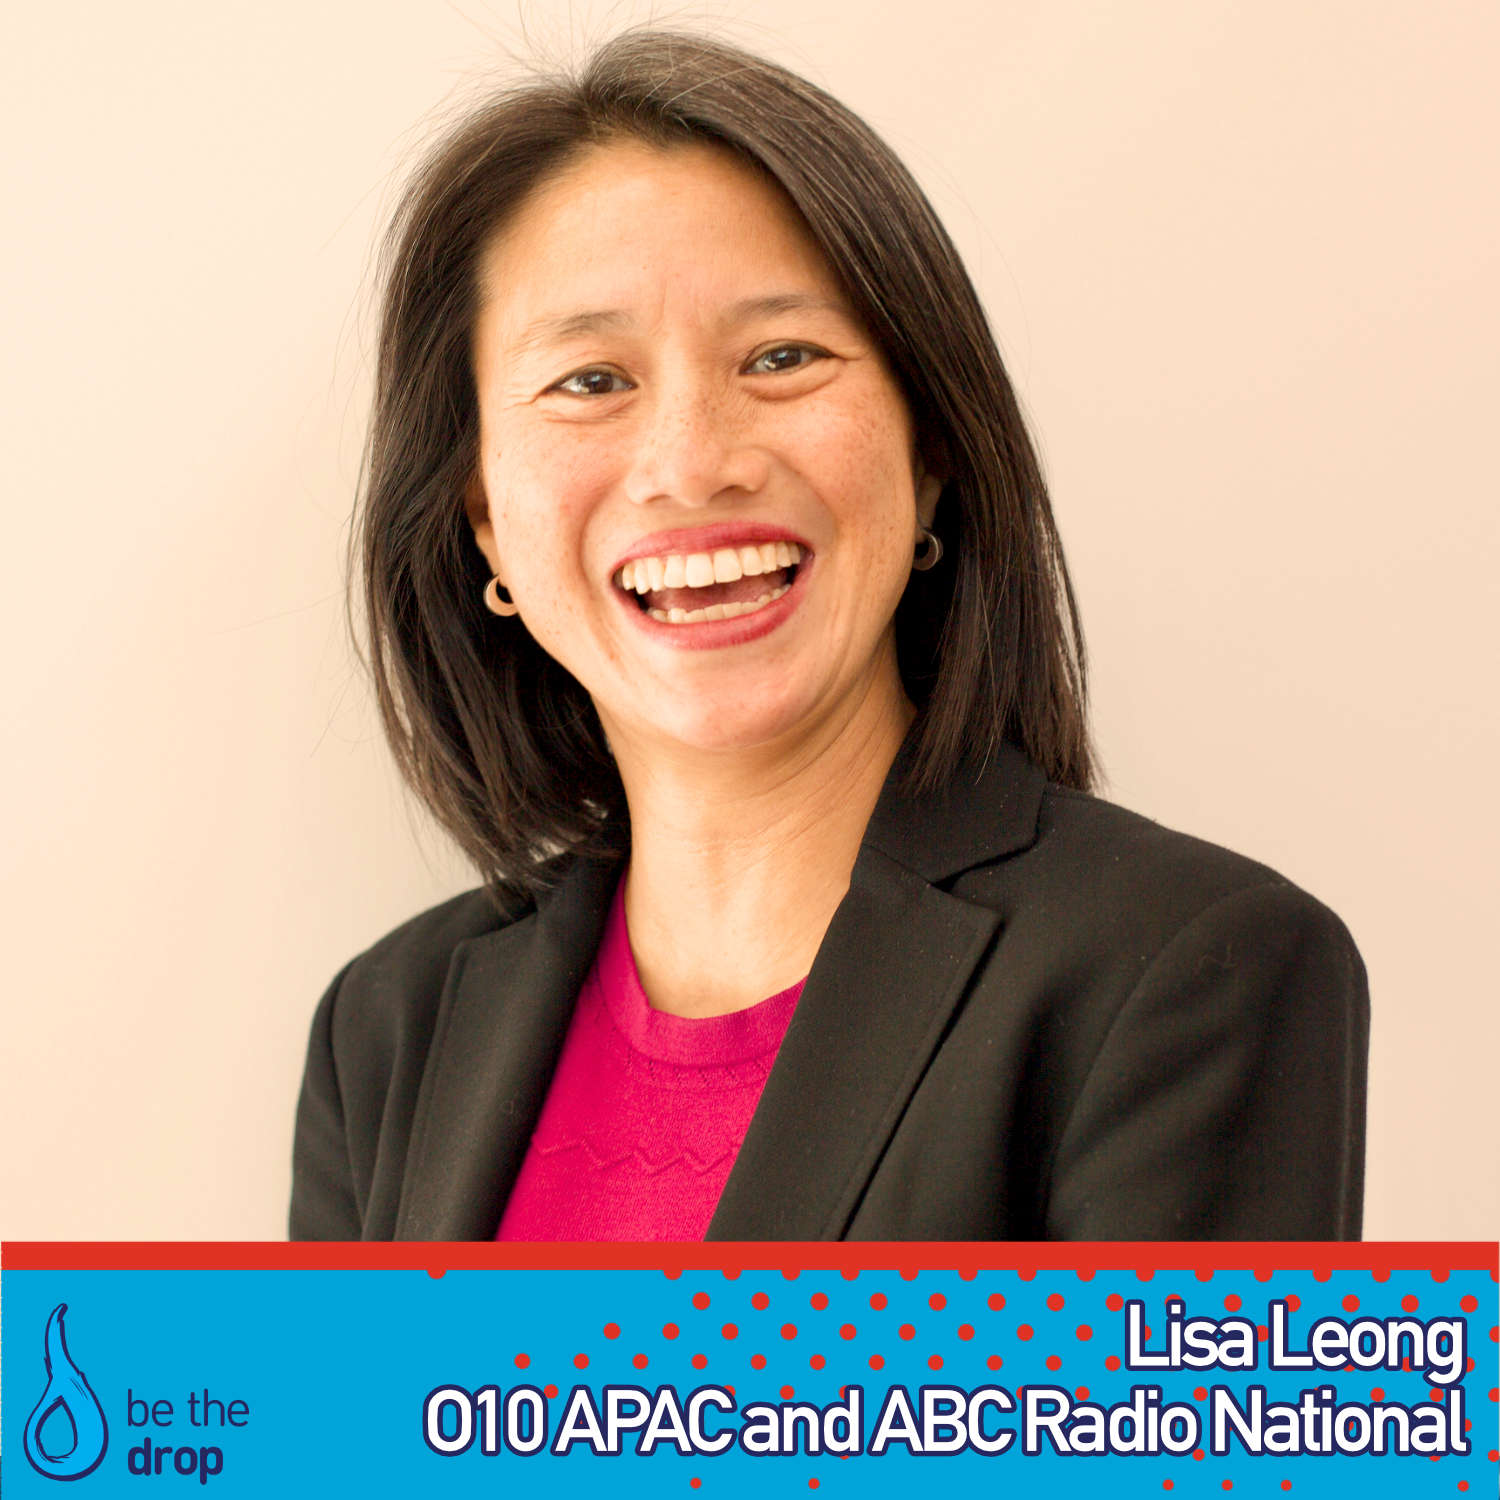 Human To Human (H2H) Connections with Lisa Leong [Podcast]